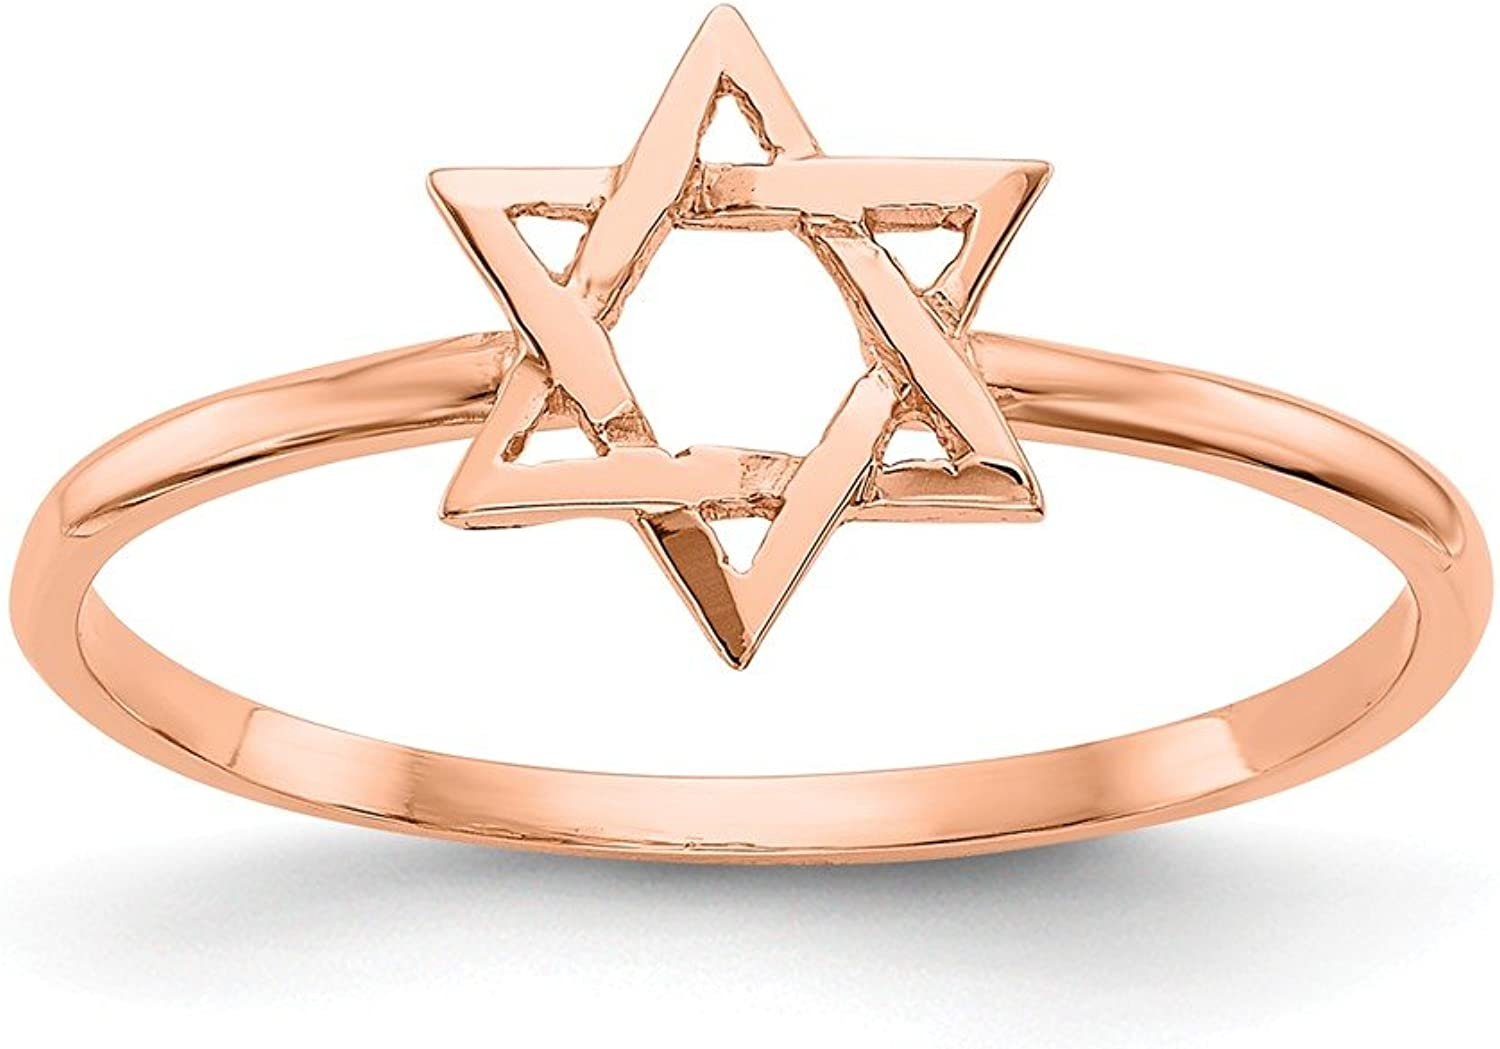 Beautiful pink gold 14K 14k pink gold Polished Star of David Ring